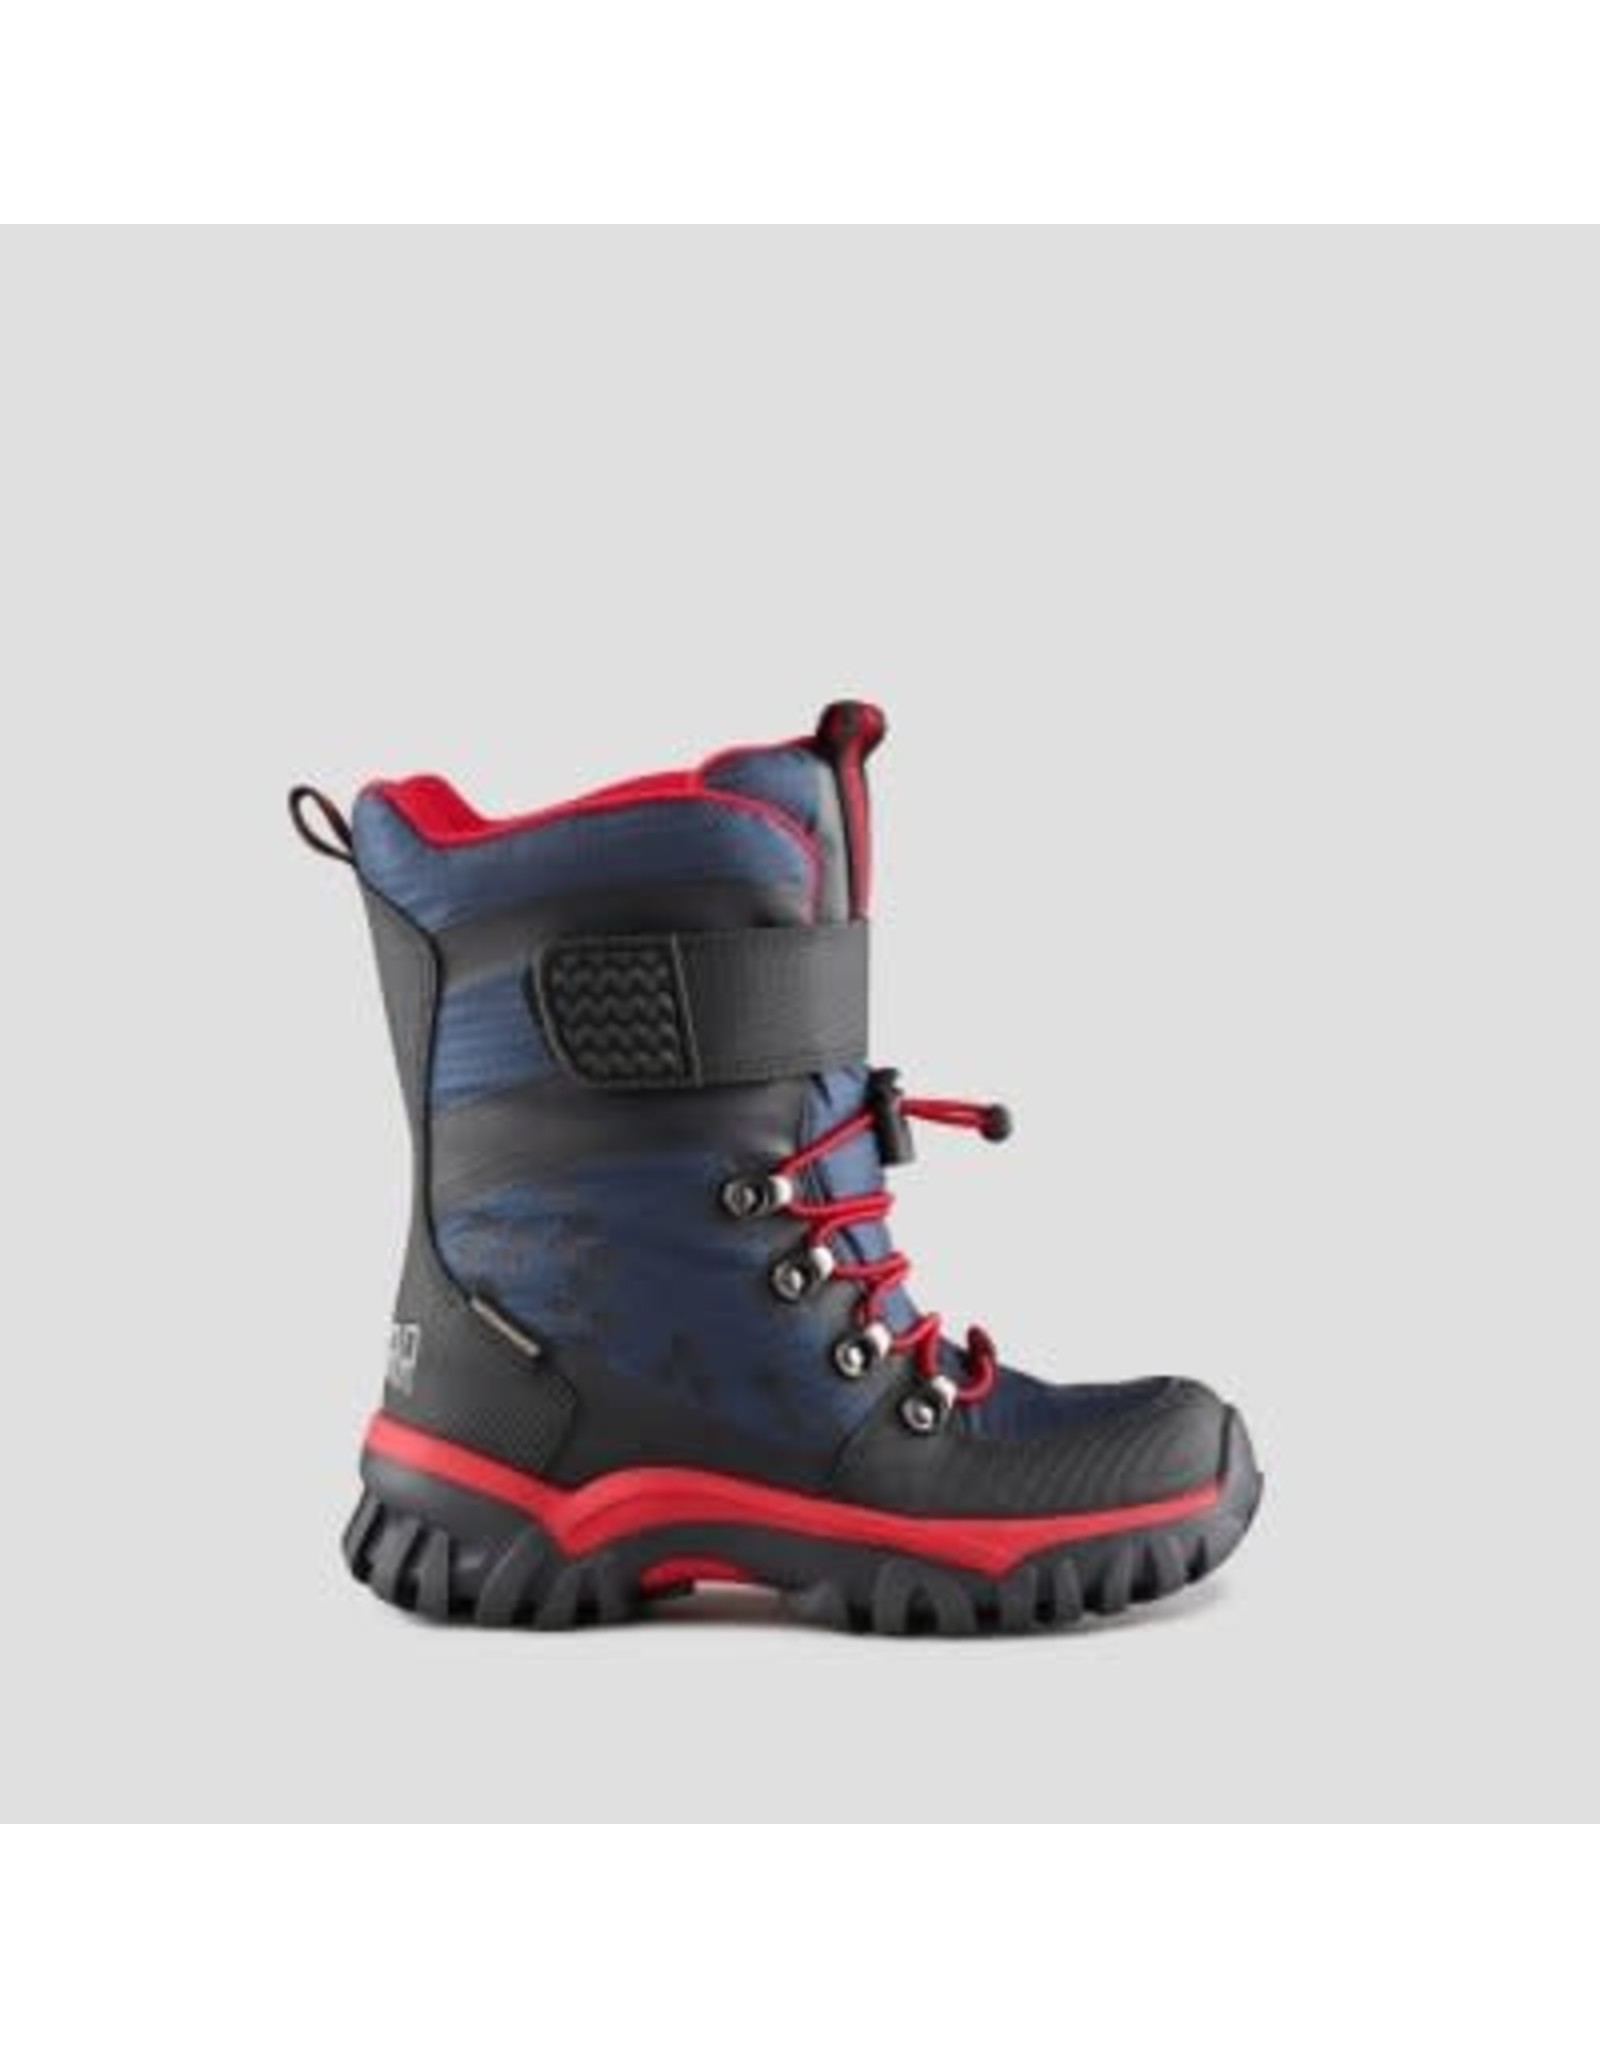 COUGAR COUGAR TREK SNOW BOOT